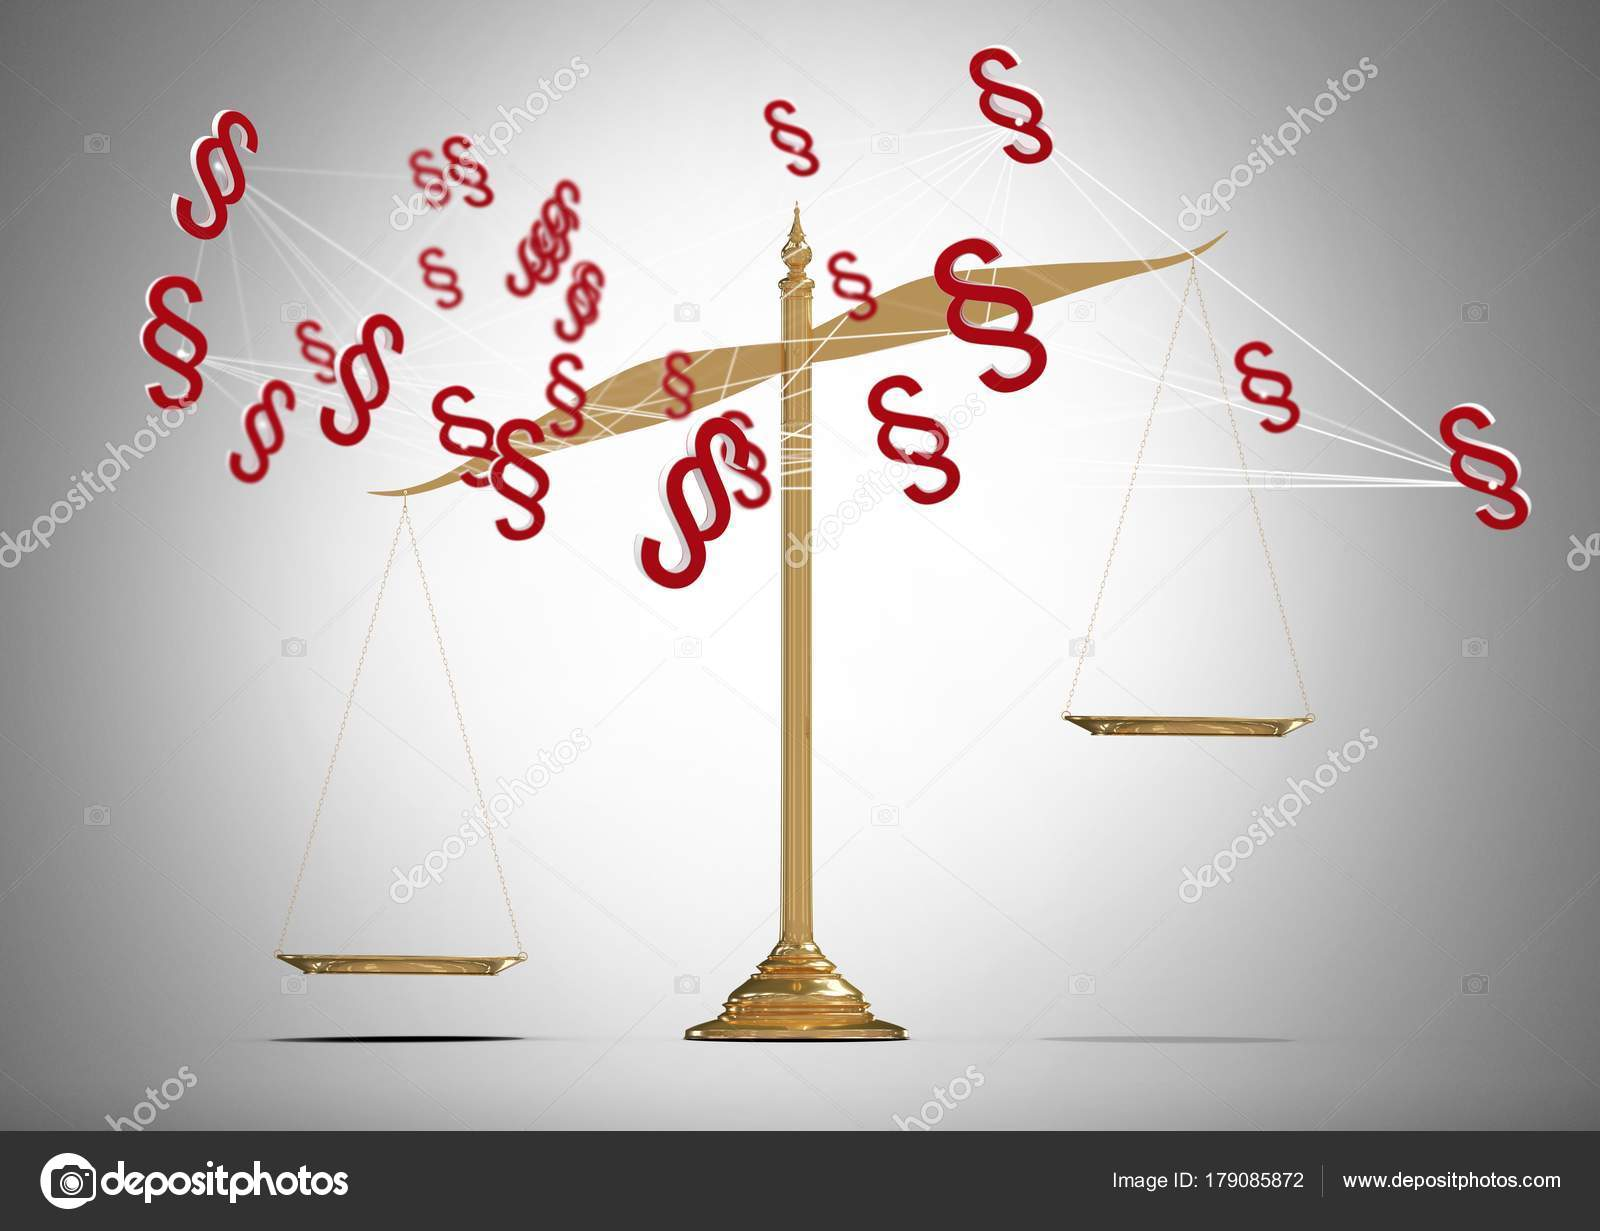 Digital composite section symbol icons balance justice scale stock digital composite section symbol icons balance justice scale stock photo buycottarizona Choice Image